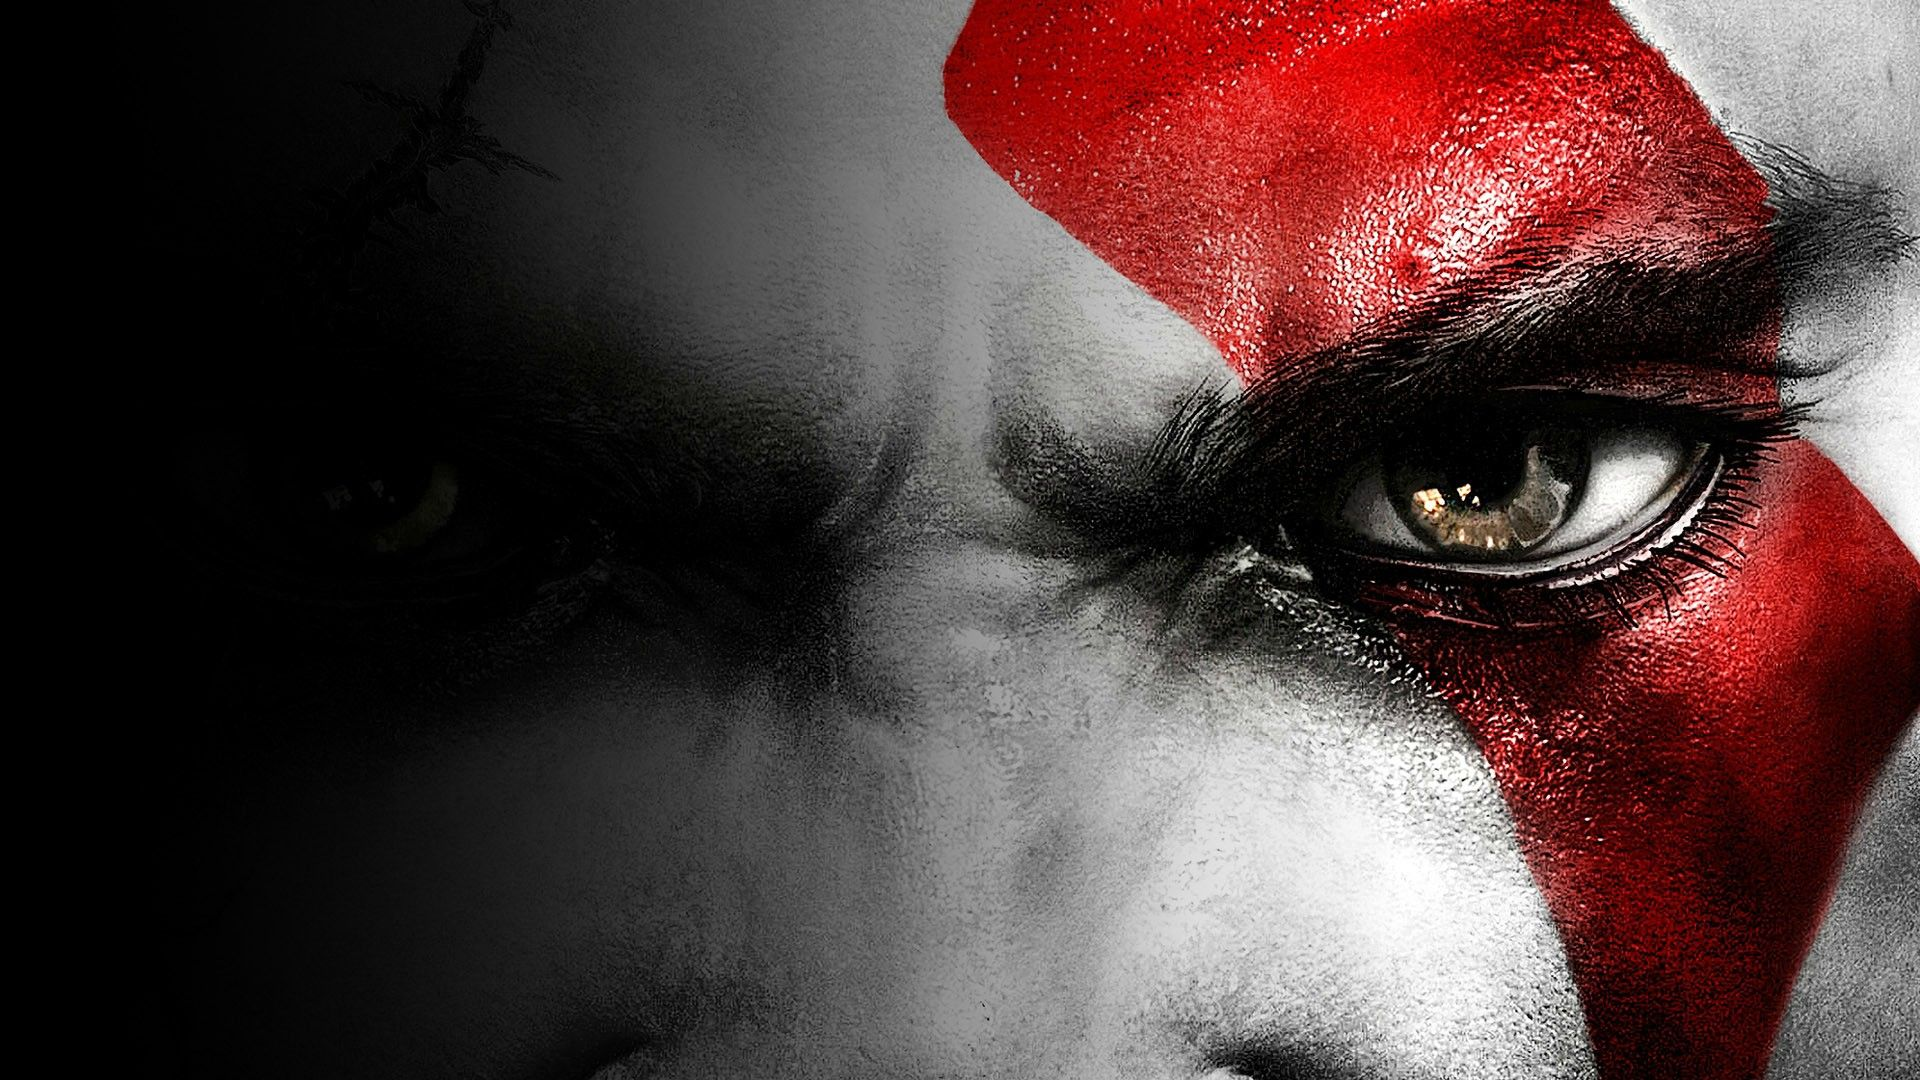 Backgrounds Part 2 Sorted By Dimensions God Of War Wallpaper Gaming Wallpaper God